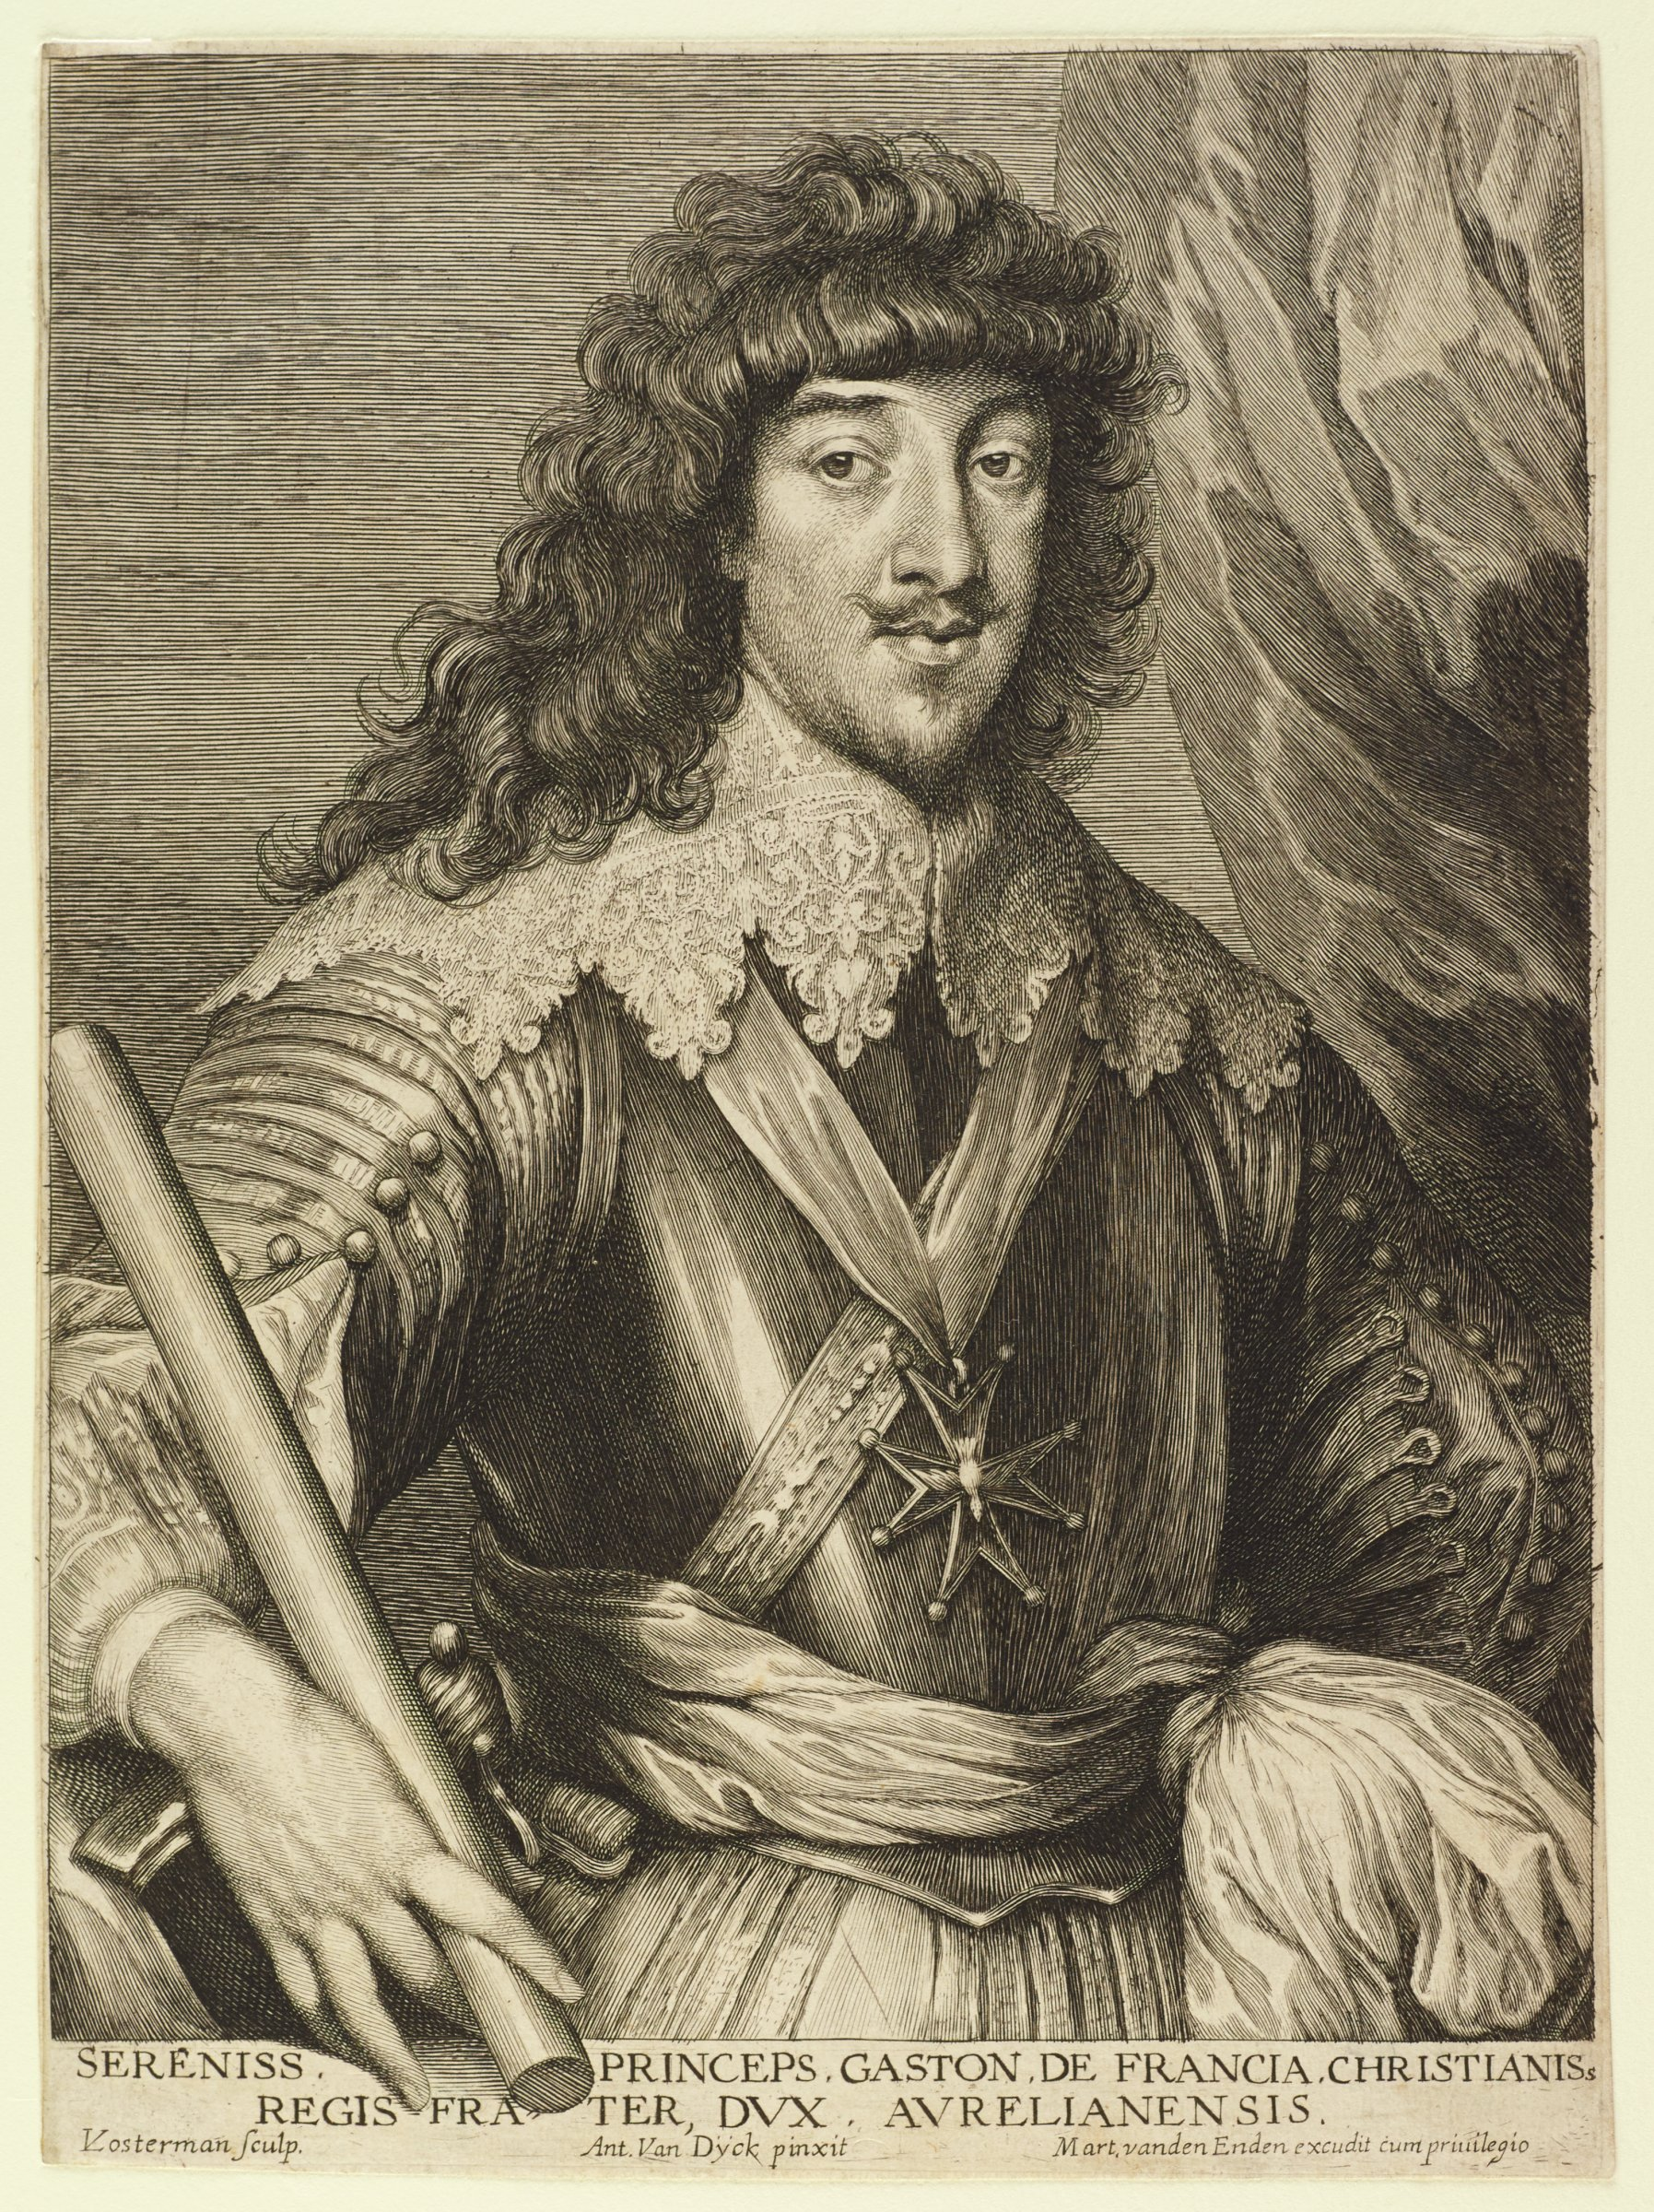 Gaston of France, Duck of Orleans, is shown in portrait from the waist up, looking out at the viewer. He wears a lace falling band, a cross medal, and holds a baton in his right hand. He has long, curly hair with a thin mustache and goatee. Behind him on the right is a curtain. This is from the Gillis Hendricx edition of the Iconography (Icones Principum Virorum Doctorum, Pictorum Chalcographorum Statuorum nec non Amatorum Pictoriae Artis Numero Centum), made between 1632-44.